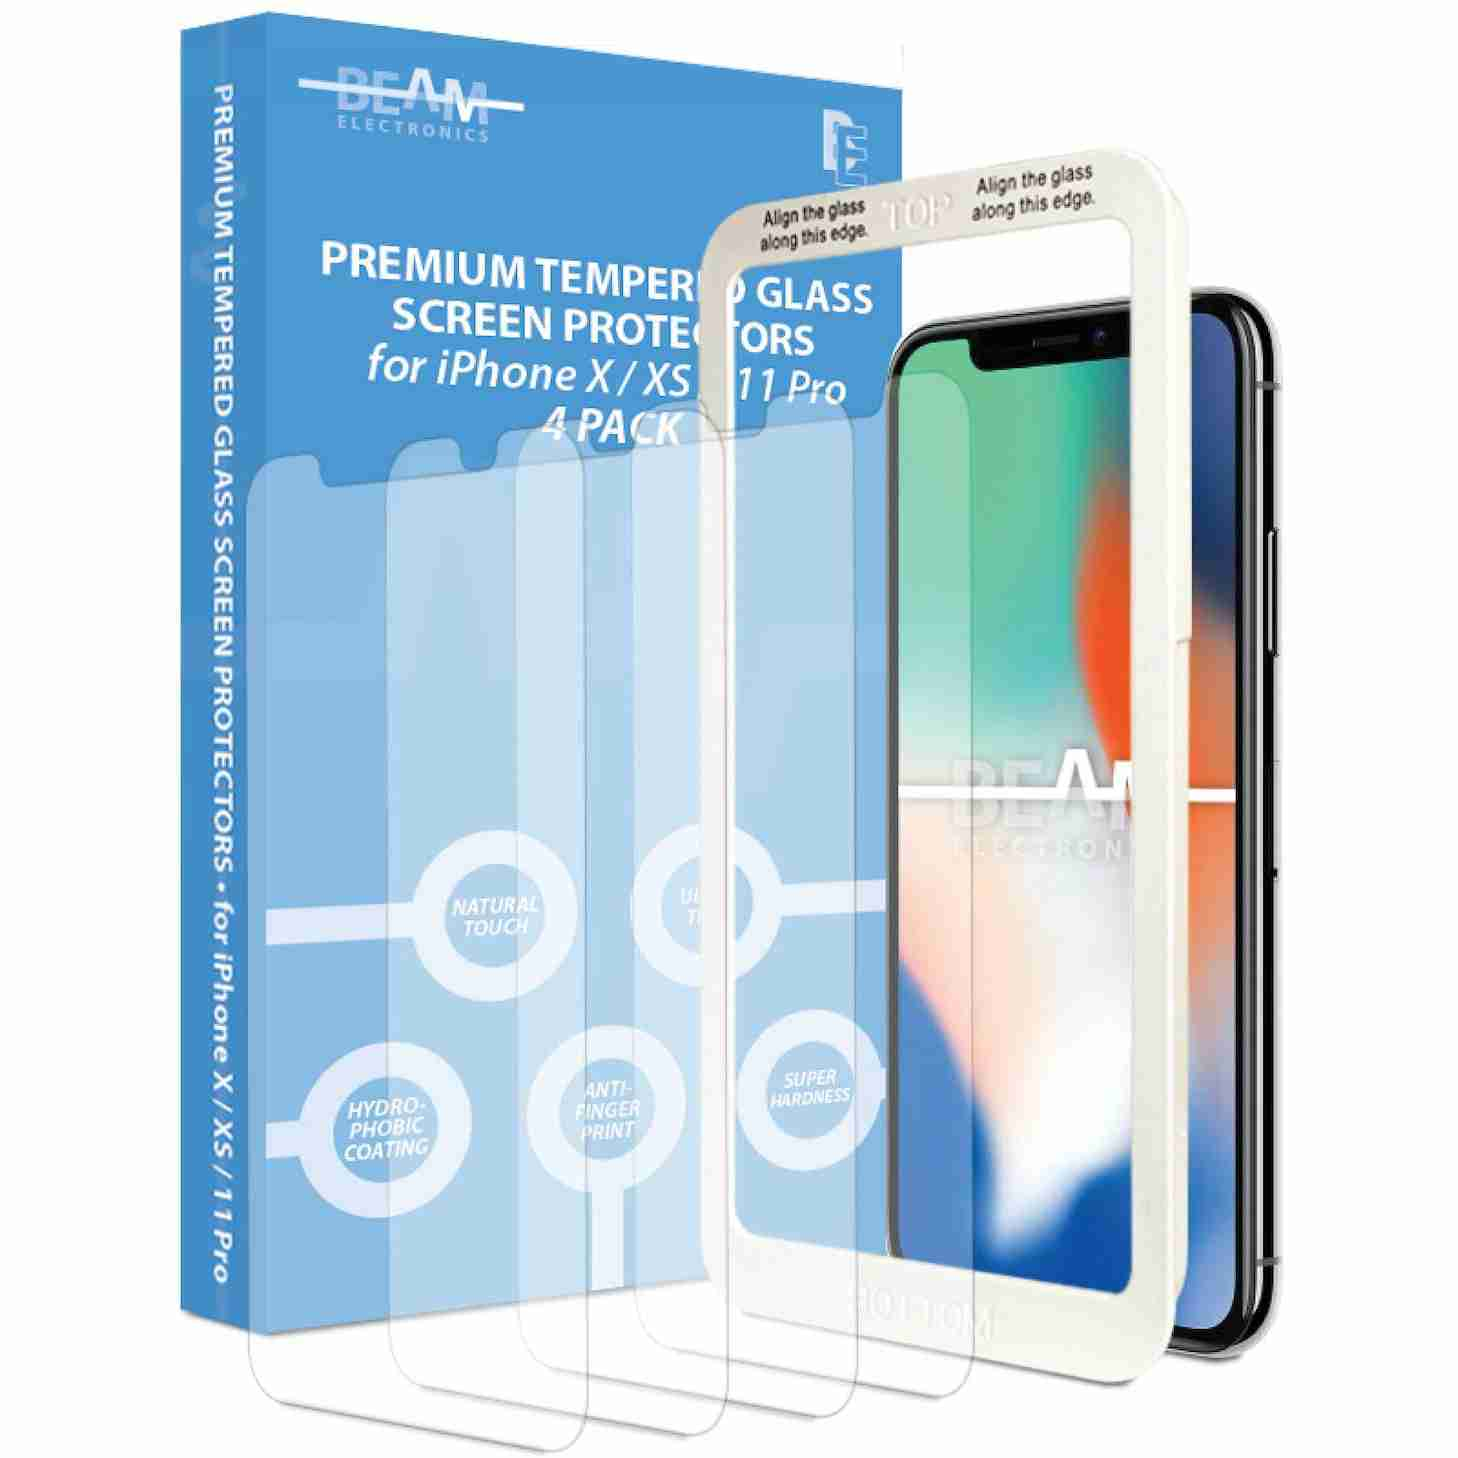 iphone-11-pro-screen-protector with cash back rebate